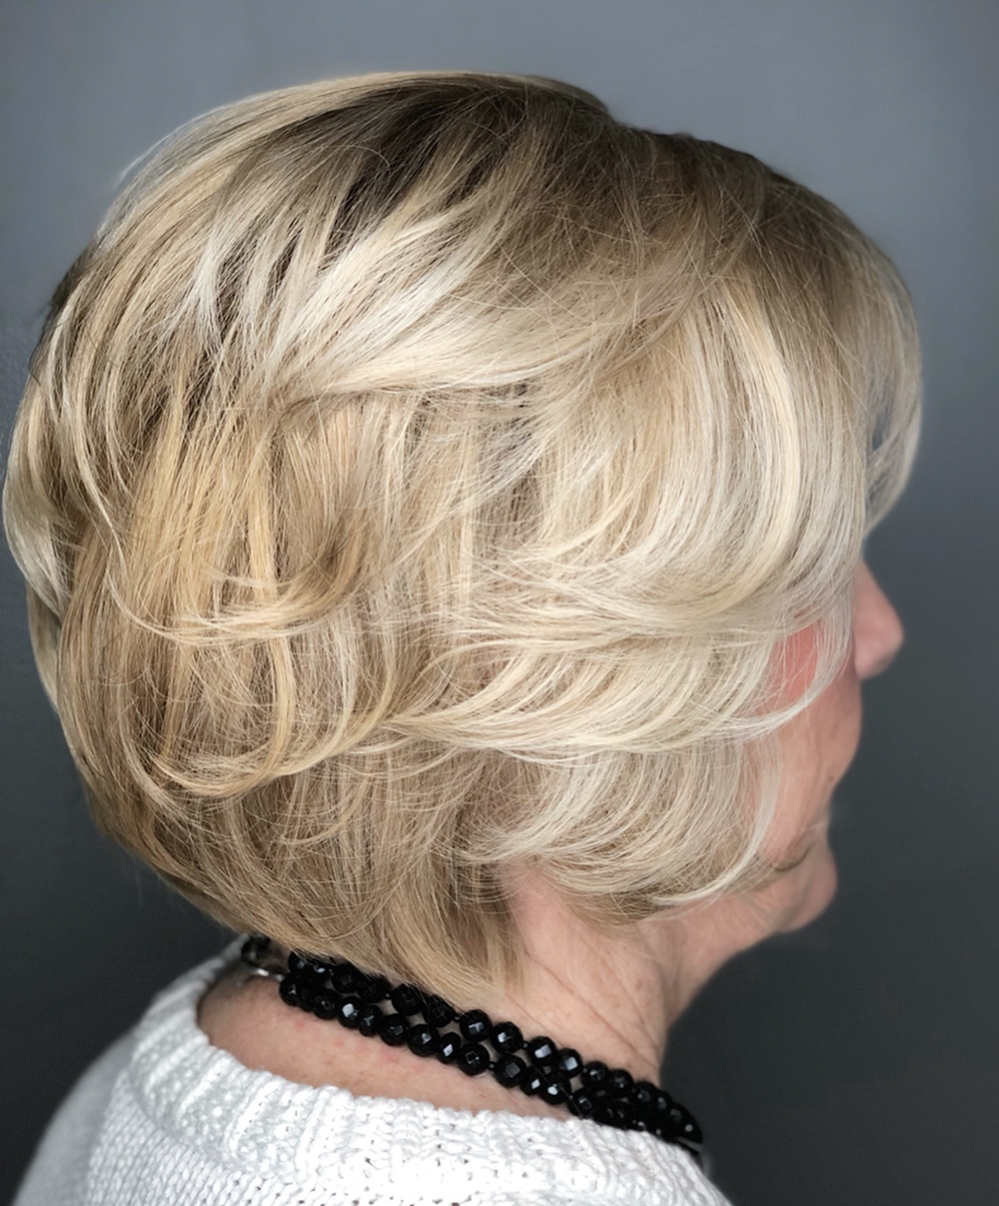 best short hairstyles for women over 50 in 2019 - hair adviser